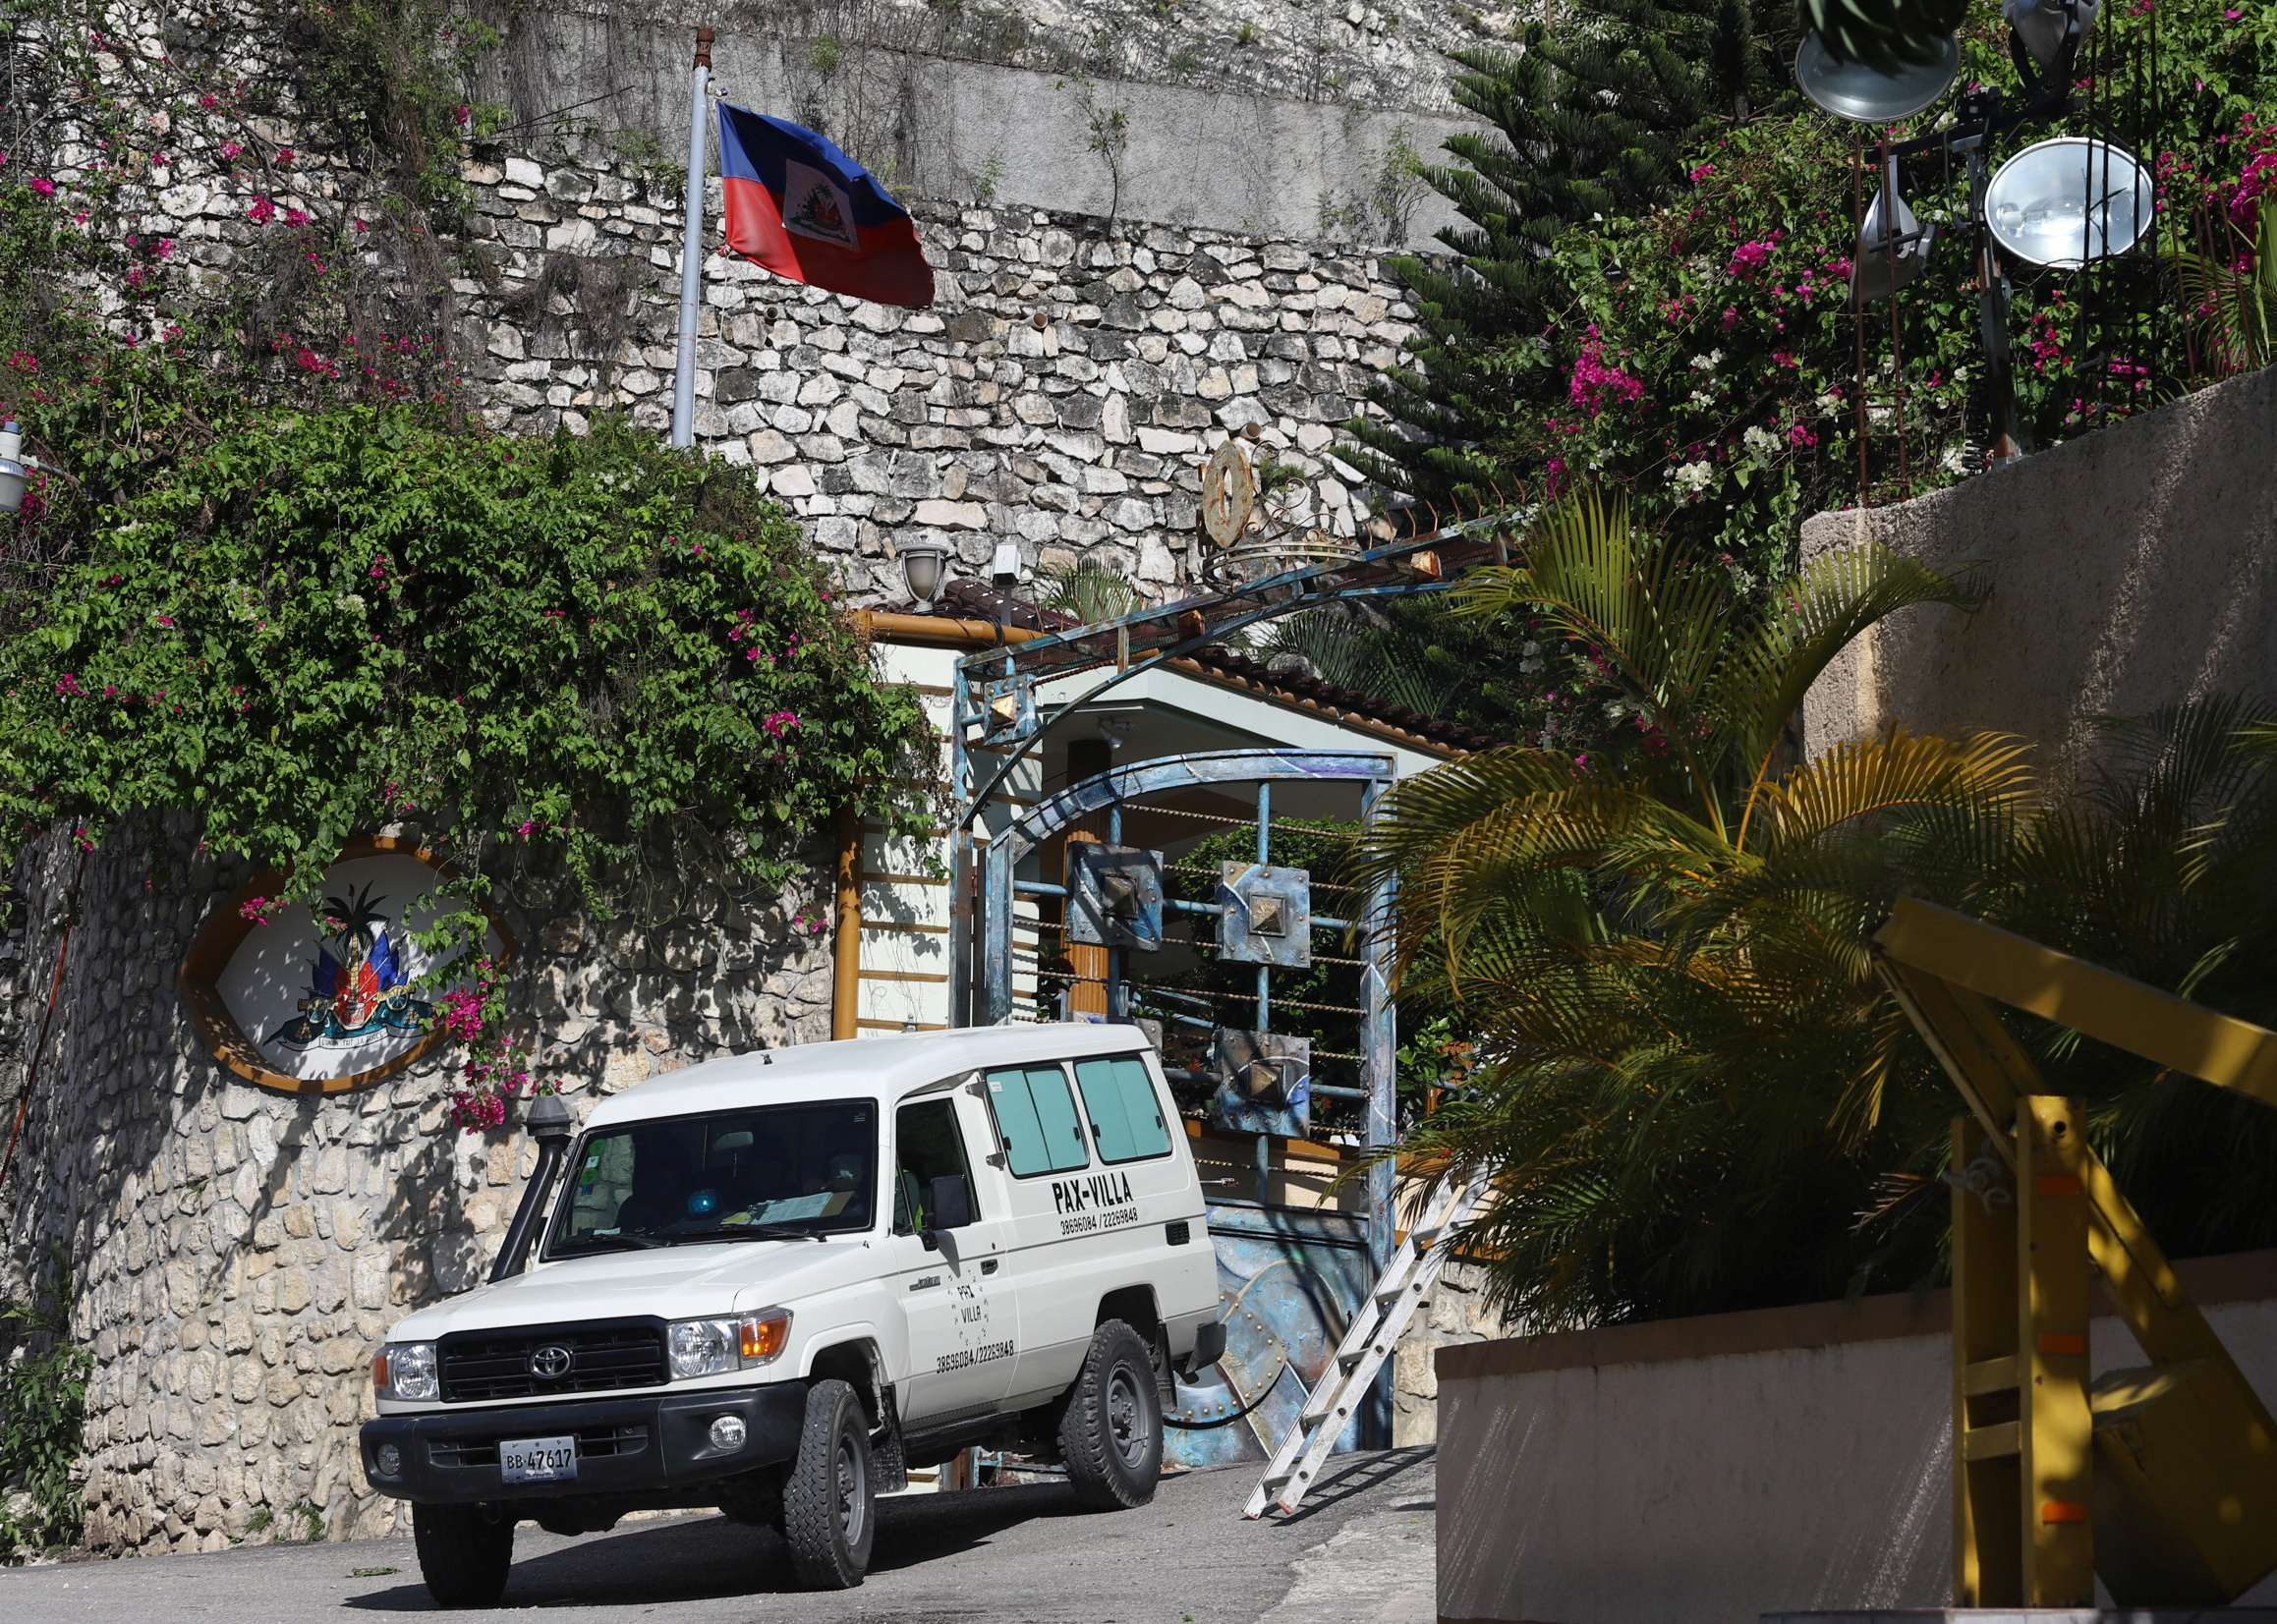 A car from a funeral parlor drives past the coat of arms of Haiti's presidency while leaving the residential area where Haiti's President Jovenel Moise was shot dead at his private home by gunmen with assault rifles, in Port-au-Prince, Haiti July 7, 2021. REUTERS/Estailove St-Val